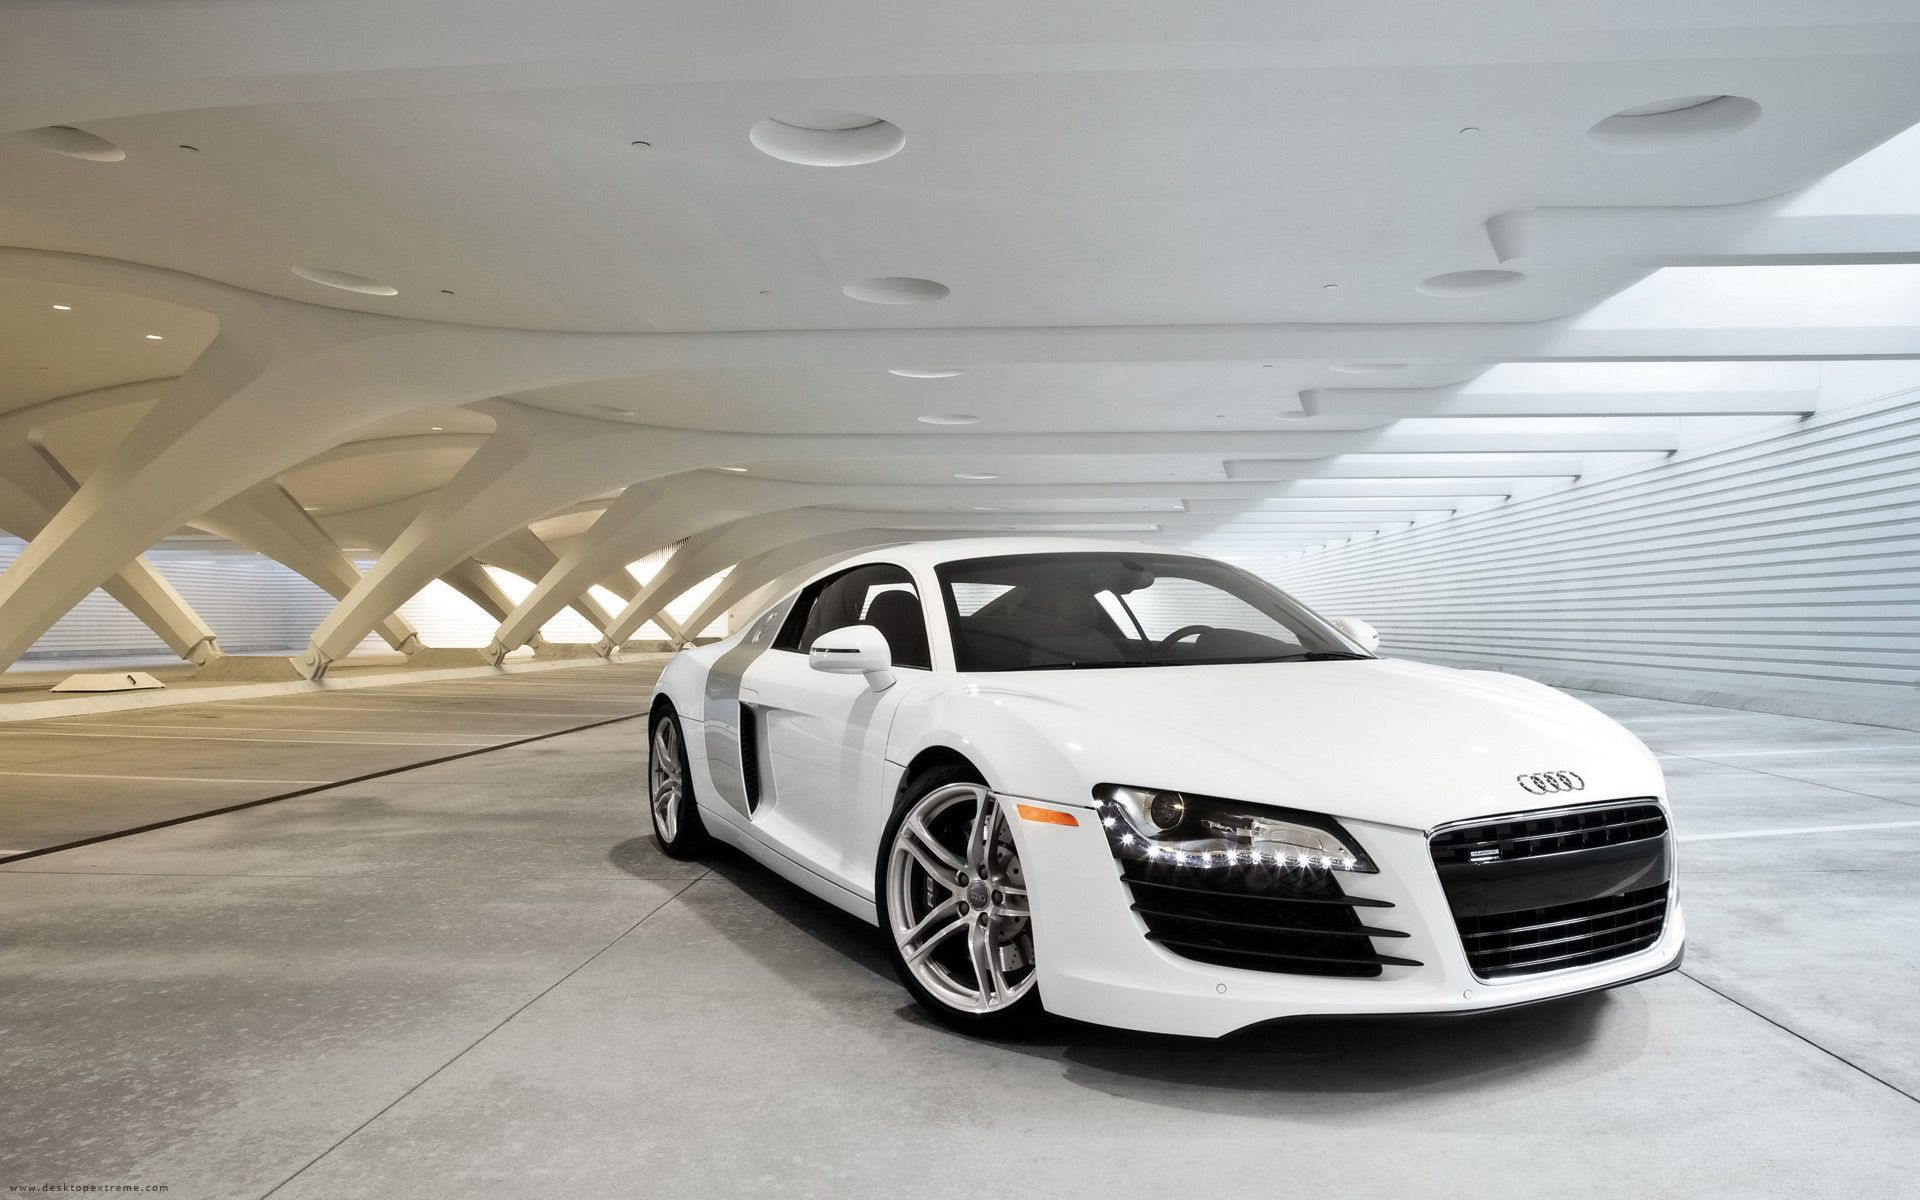 Attirant Nice Sports Car White Audi Gt Wallpaper   Http://69hdwallpapers.com/